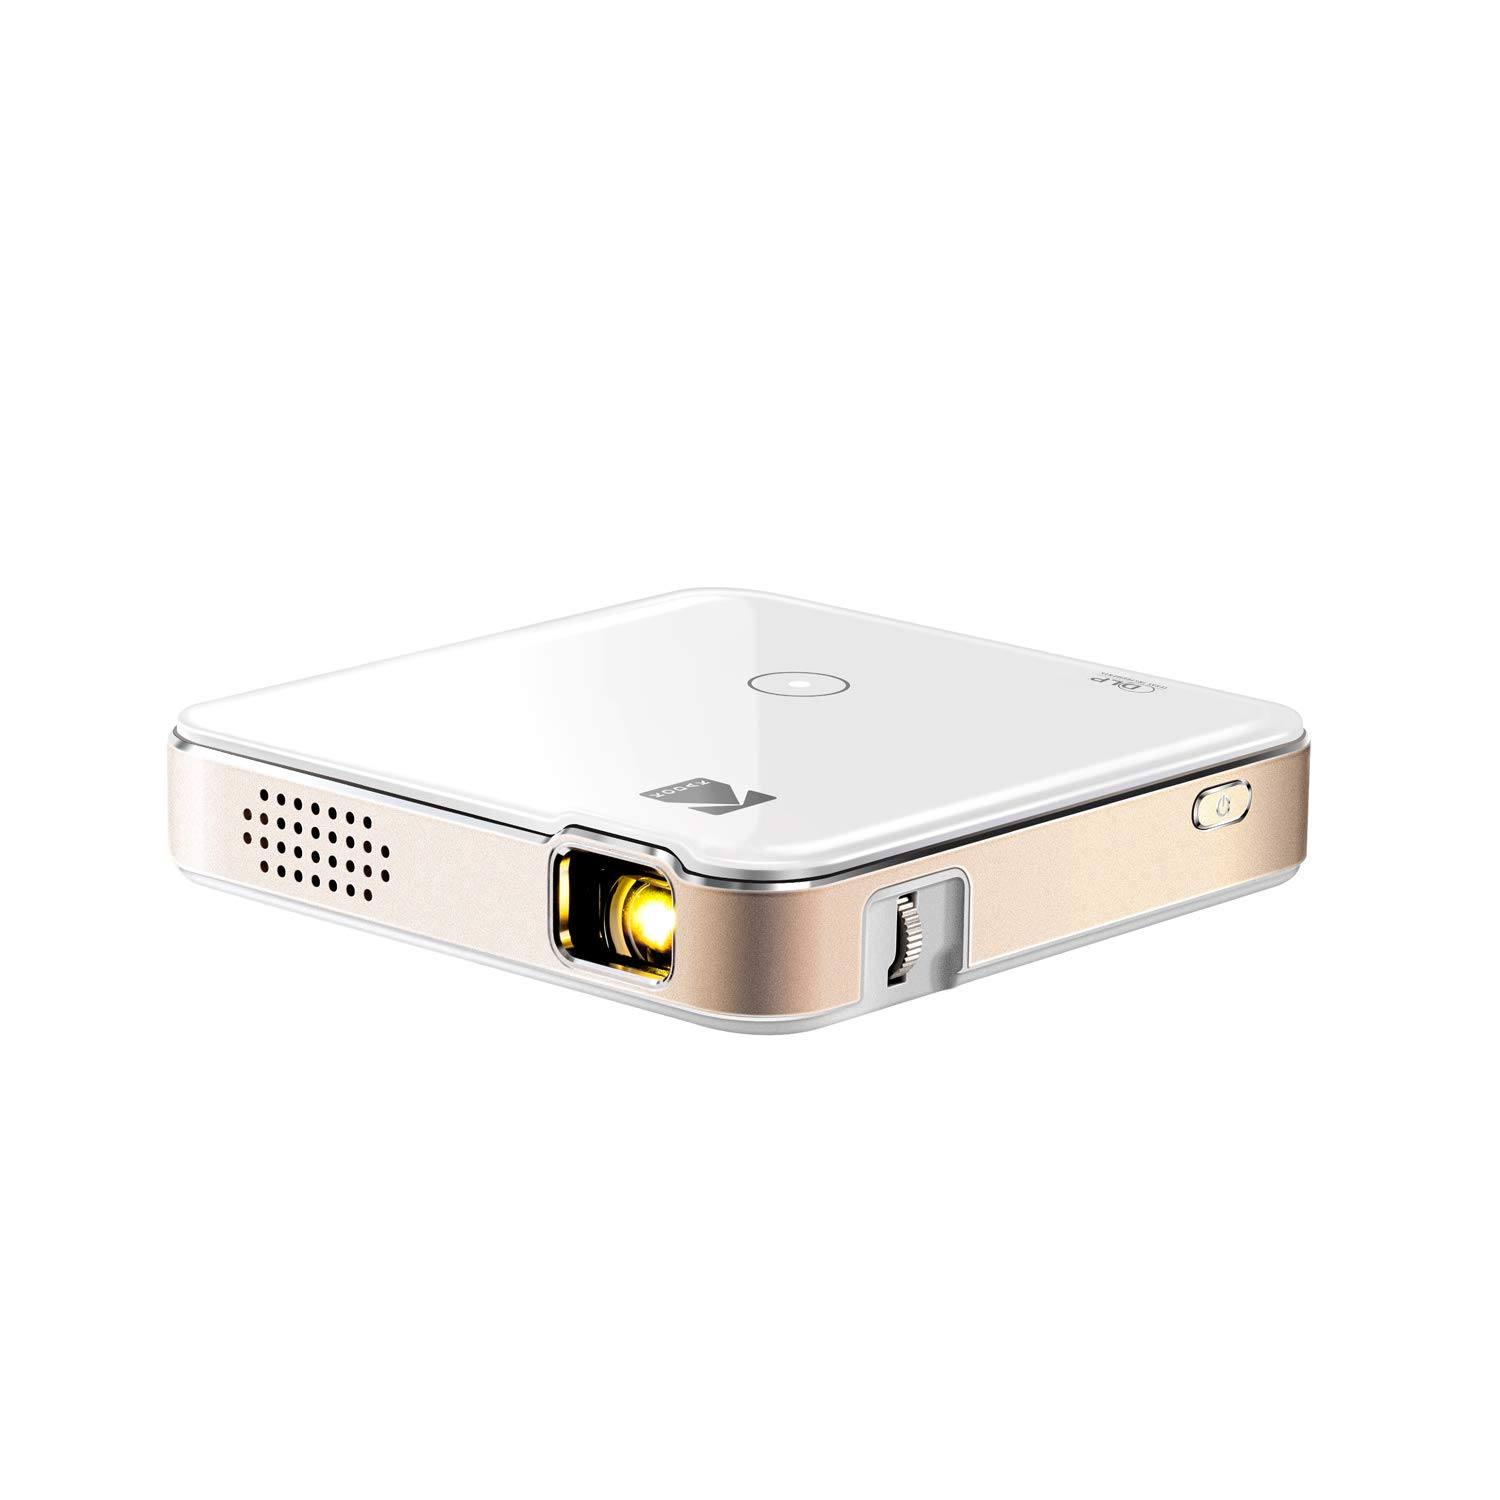 KODAK Luma 150 Pocket Projector - Portable Movie Projector w/ Built-in Speaker for Home & Office Produces Images Up to 150'' for Anywhere Entertainment   HDMI, USB, MicroSD, Airplay & Miracast Enabled by KODAK